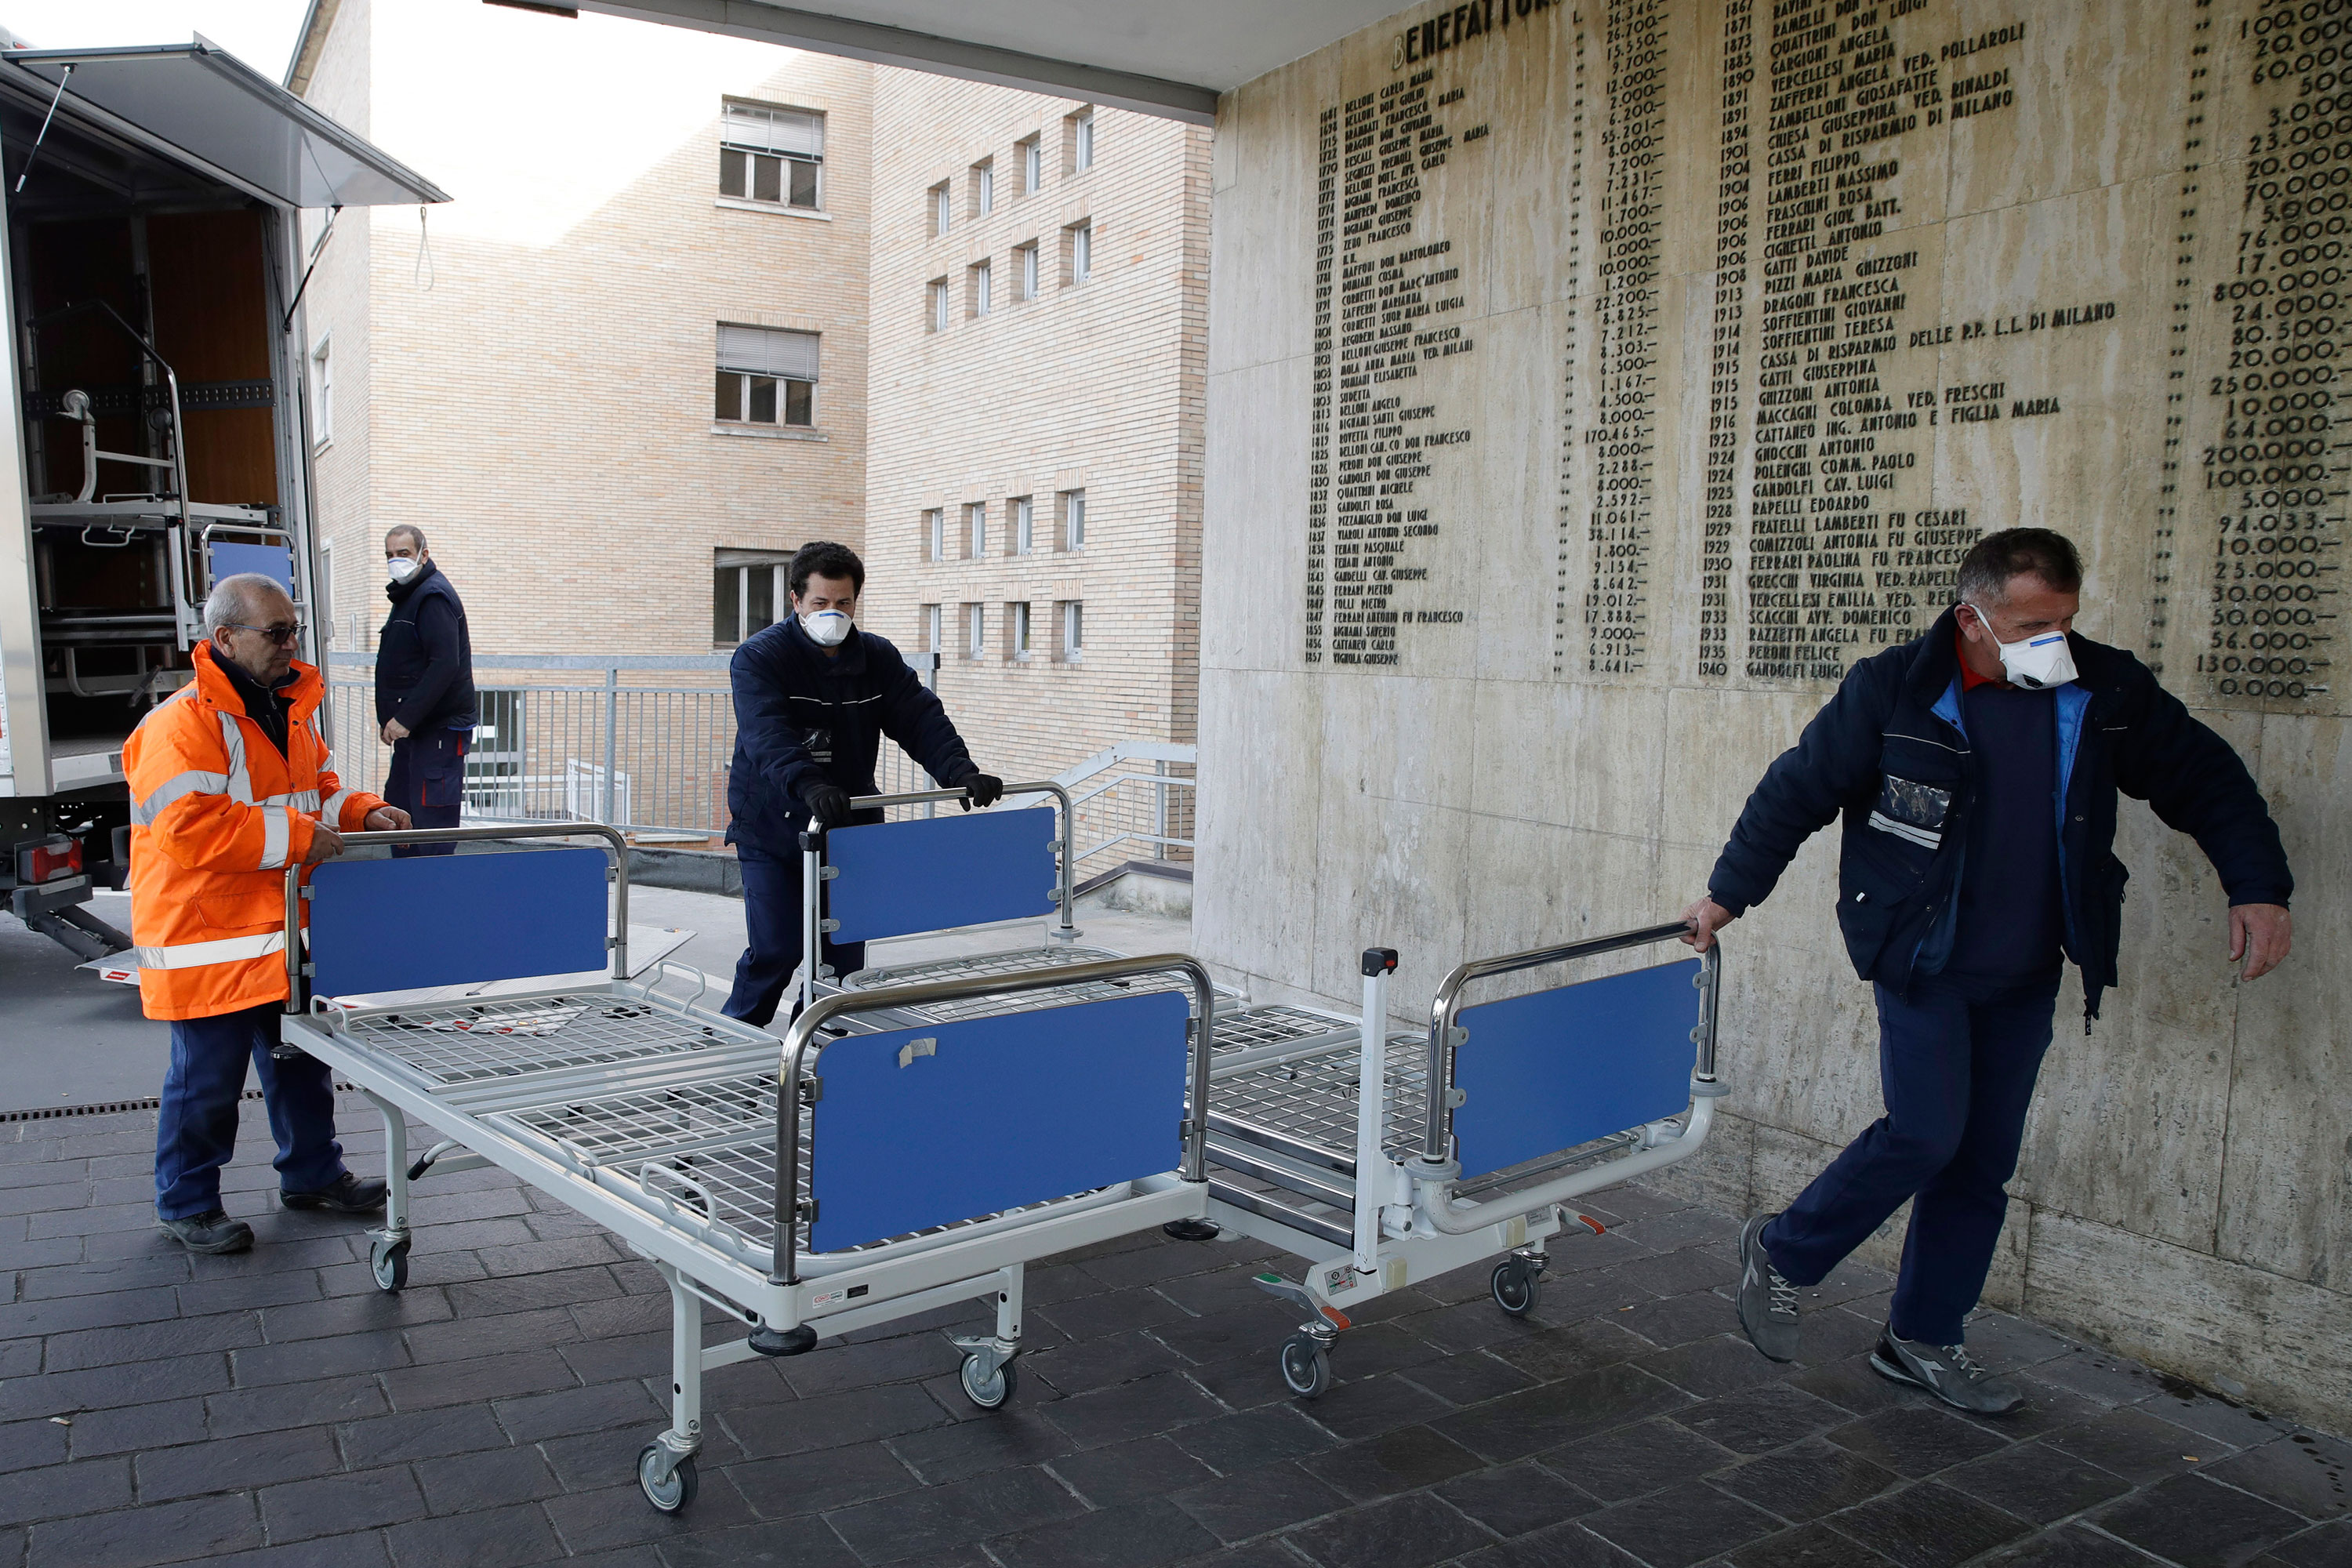 Hospital personnel in Codogno, Italy, carry new beds inside the hospital on Friday, February 21. The hospital is hosting some people who have been diagnosed with the novel coronavirus.